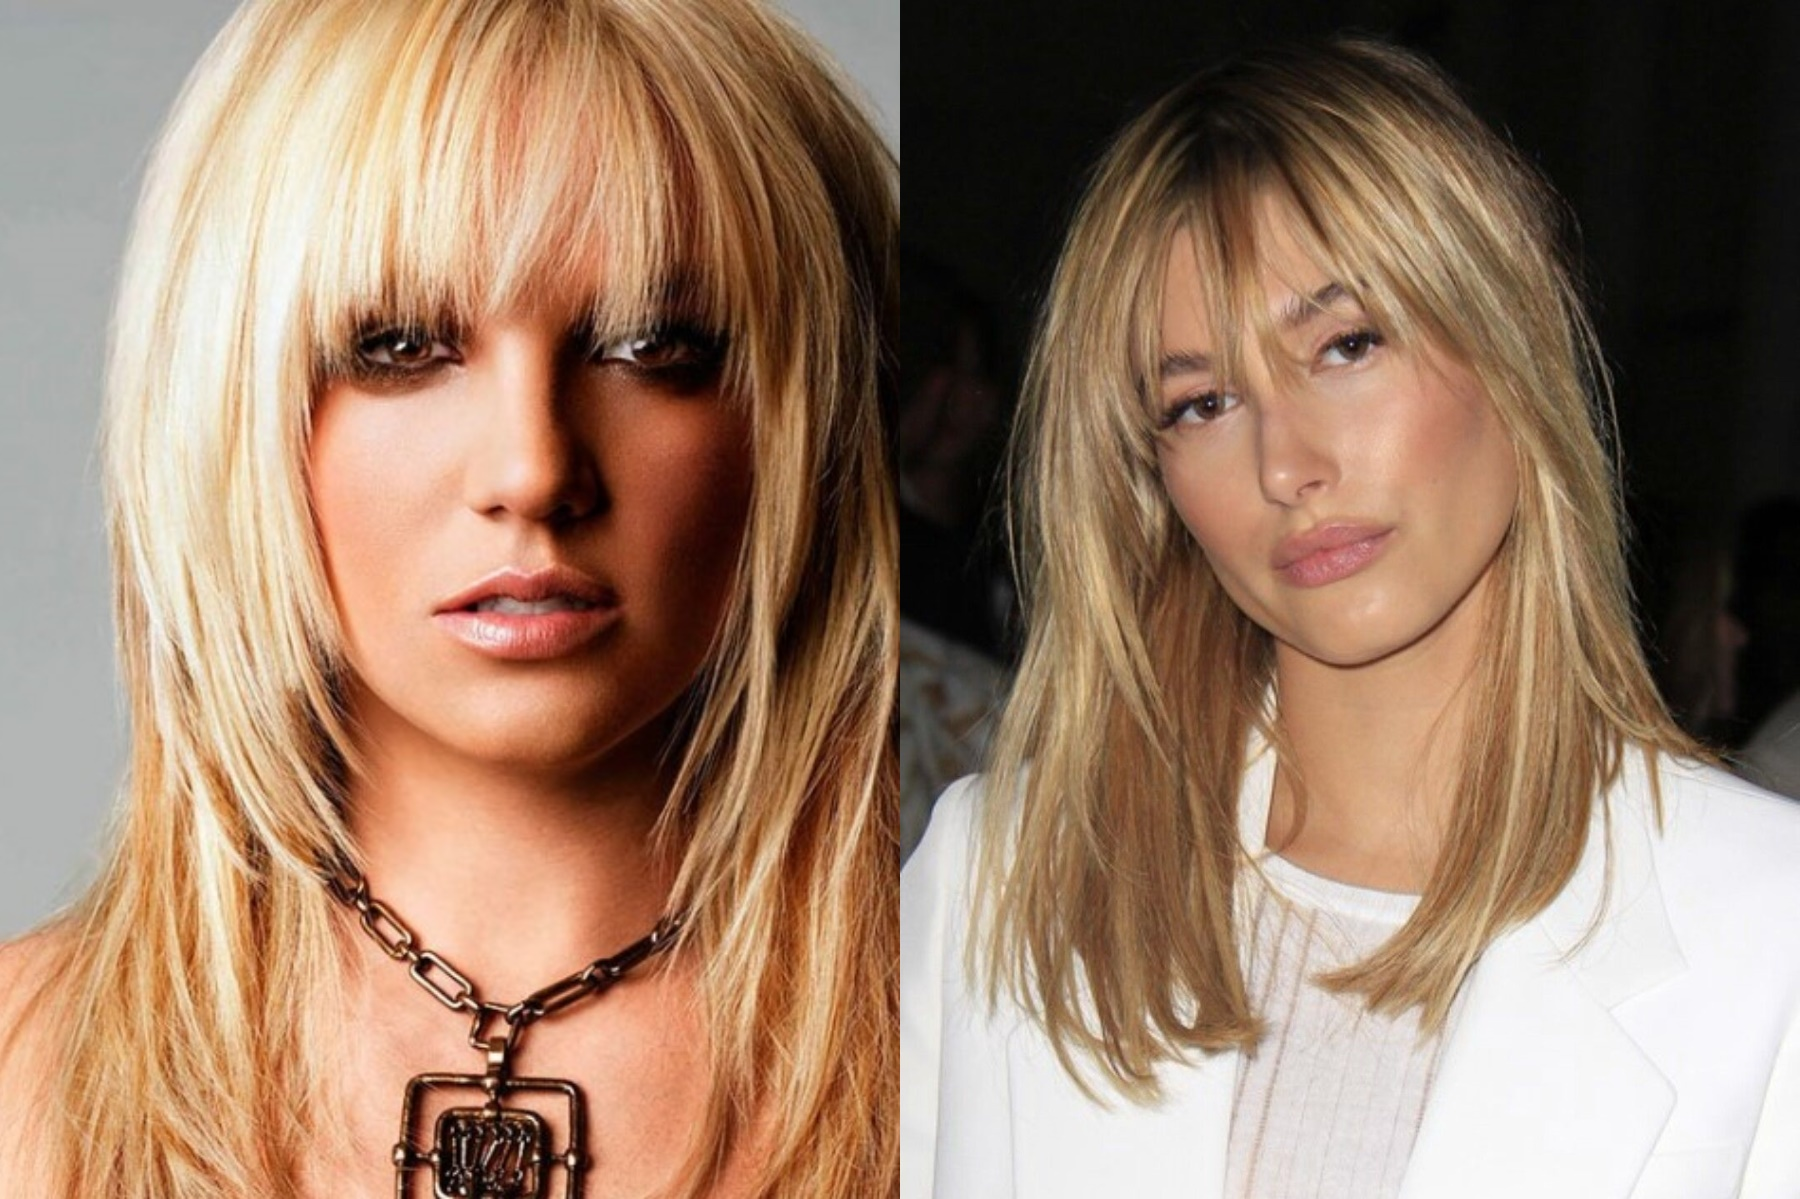 Latest Ragged Bangs 2018 For Women's Hairstyles 3